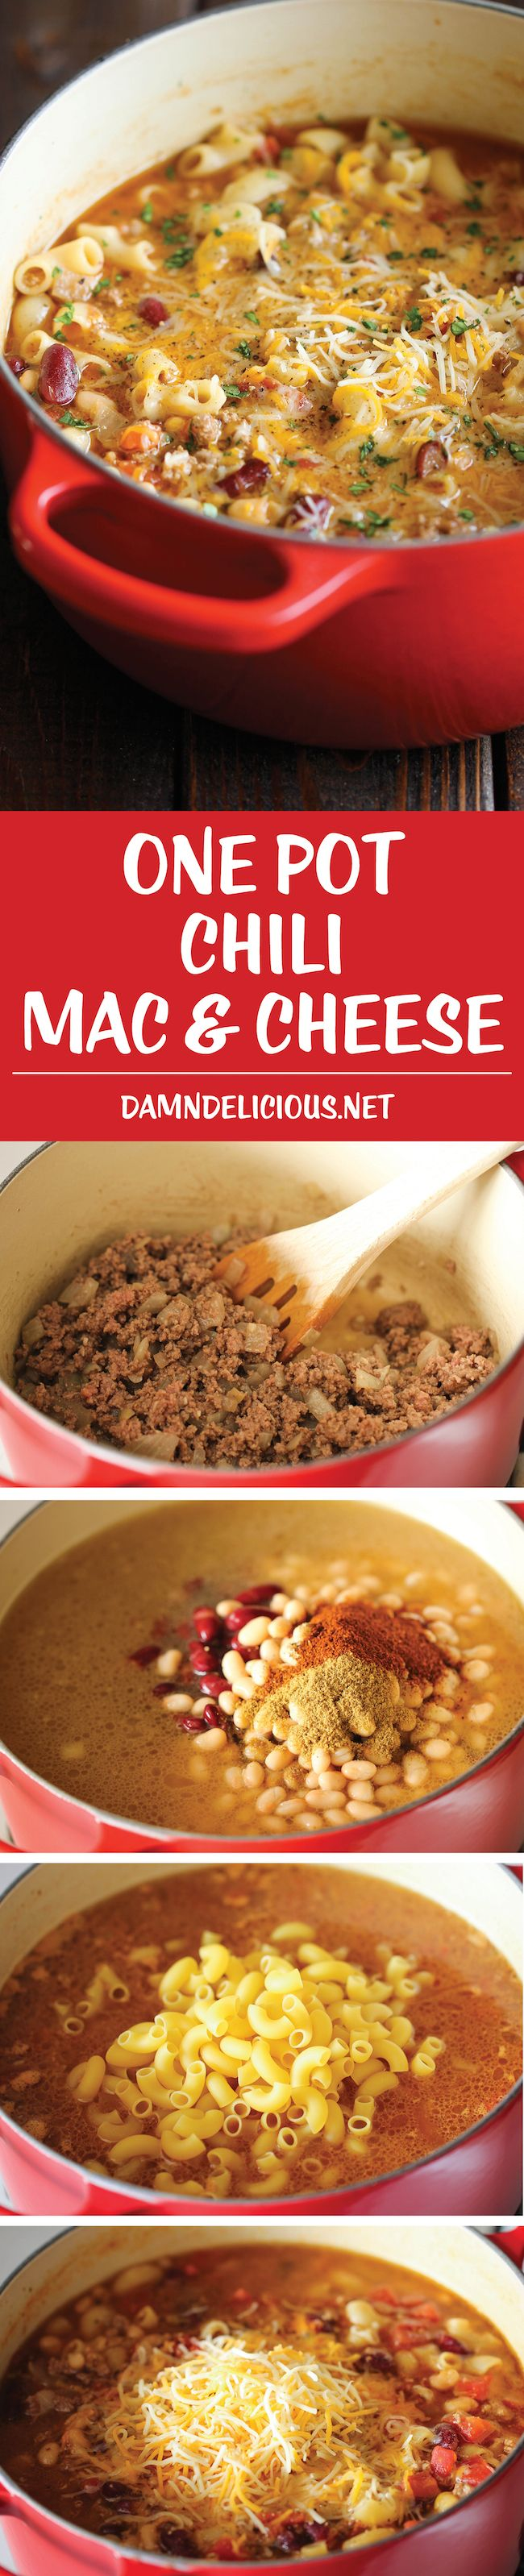 One Pot Chili Mac and Cheese - Two favorite comfort foods come together in this easy, 30 min one-pot meal that the whole family will love!